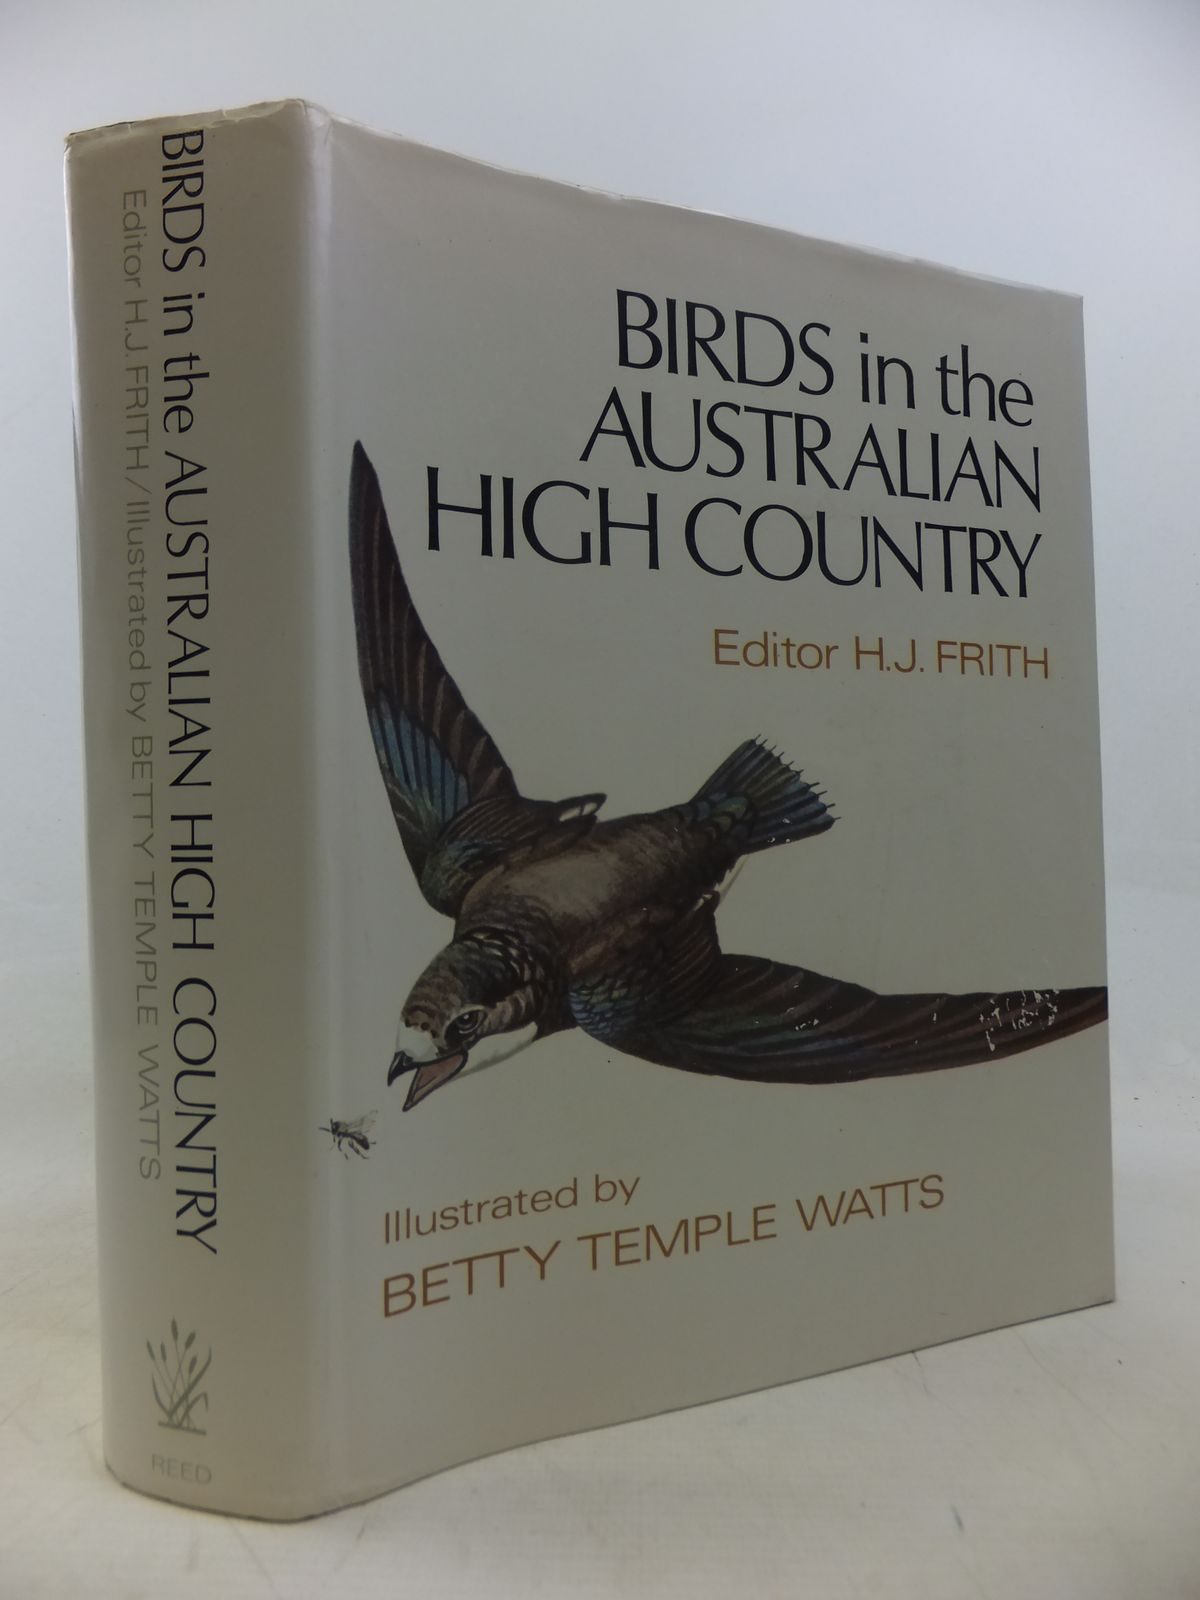 Photo of BIRDS IN THE AUSTRALIAN HIGH COUNTRY written by Frith, H.J. illustrated by Watts, Betty Temple published by A.H. & A.W. Reed (STOCK CODE: 1811148)  for sale by Stella & Rose's Books